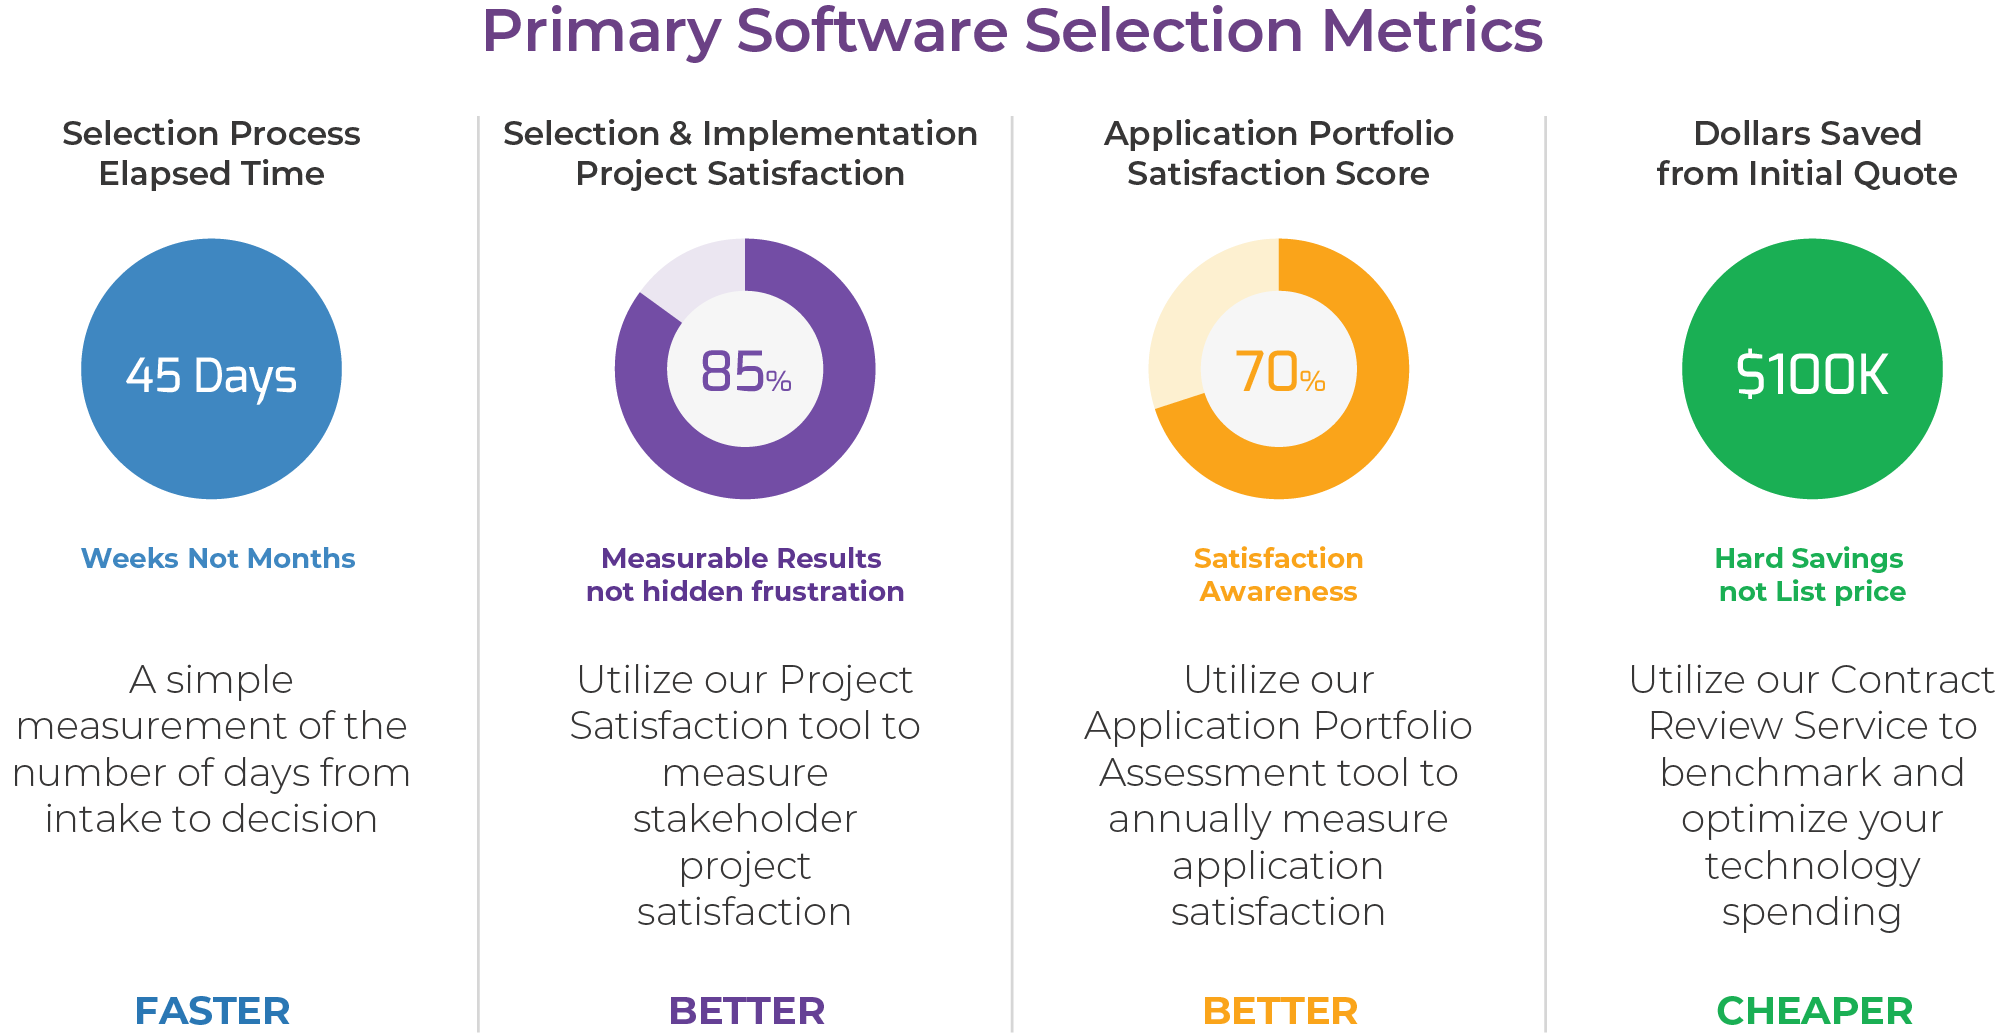 Primary Software Selection Metrics Chart